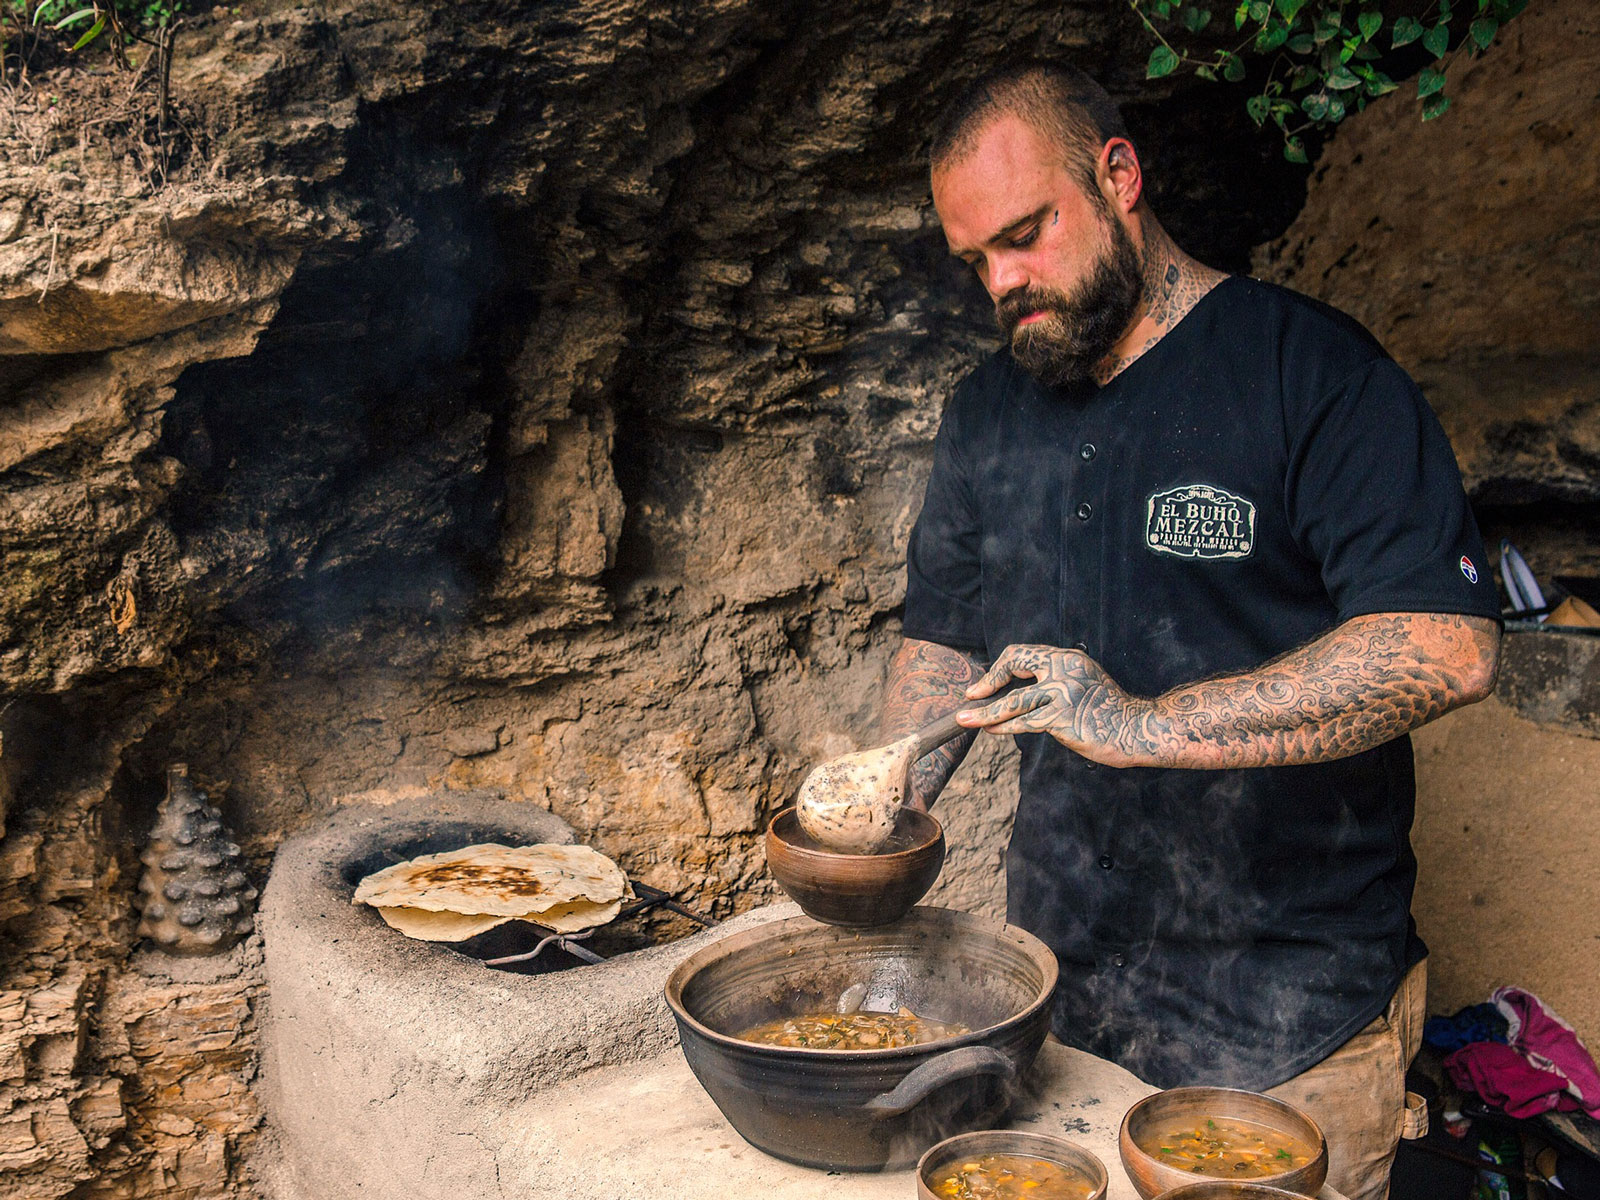 This Chef's Whole Body Is Covered in Taco-Related Tattoos